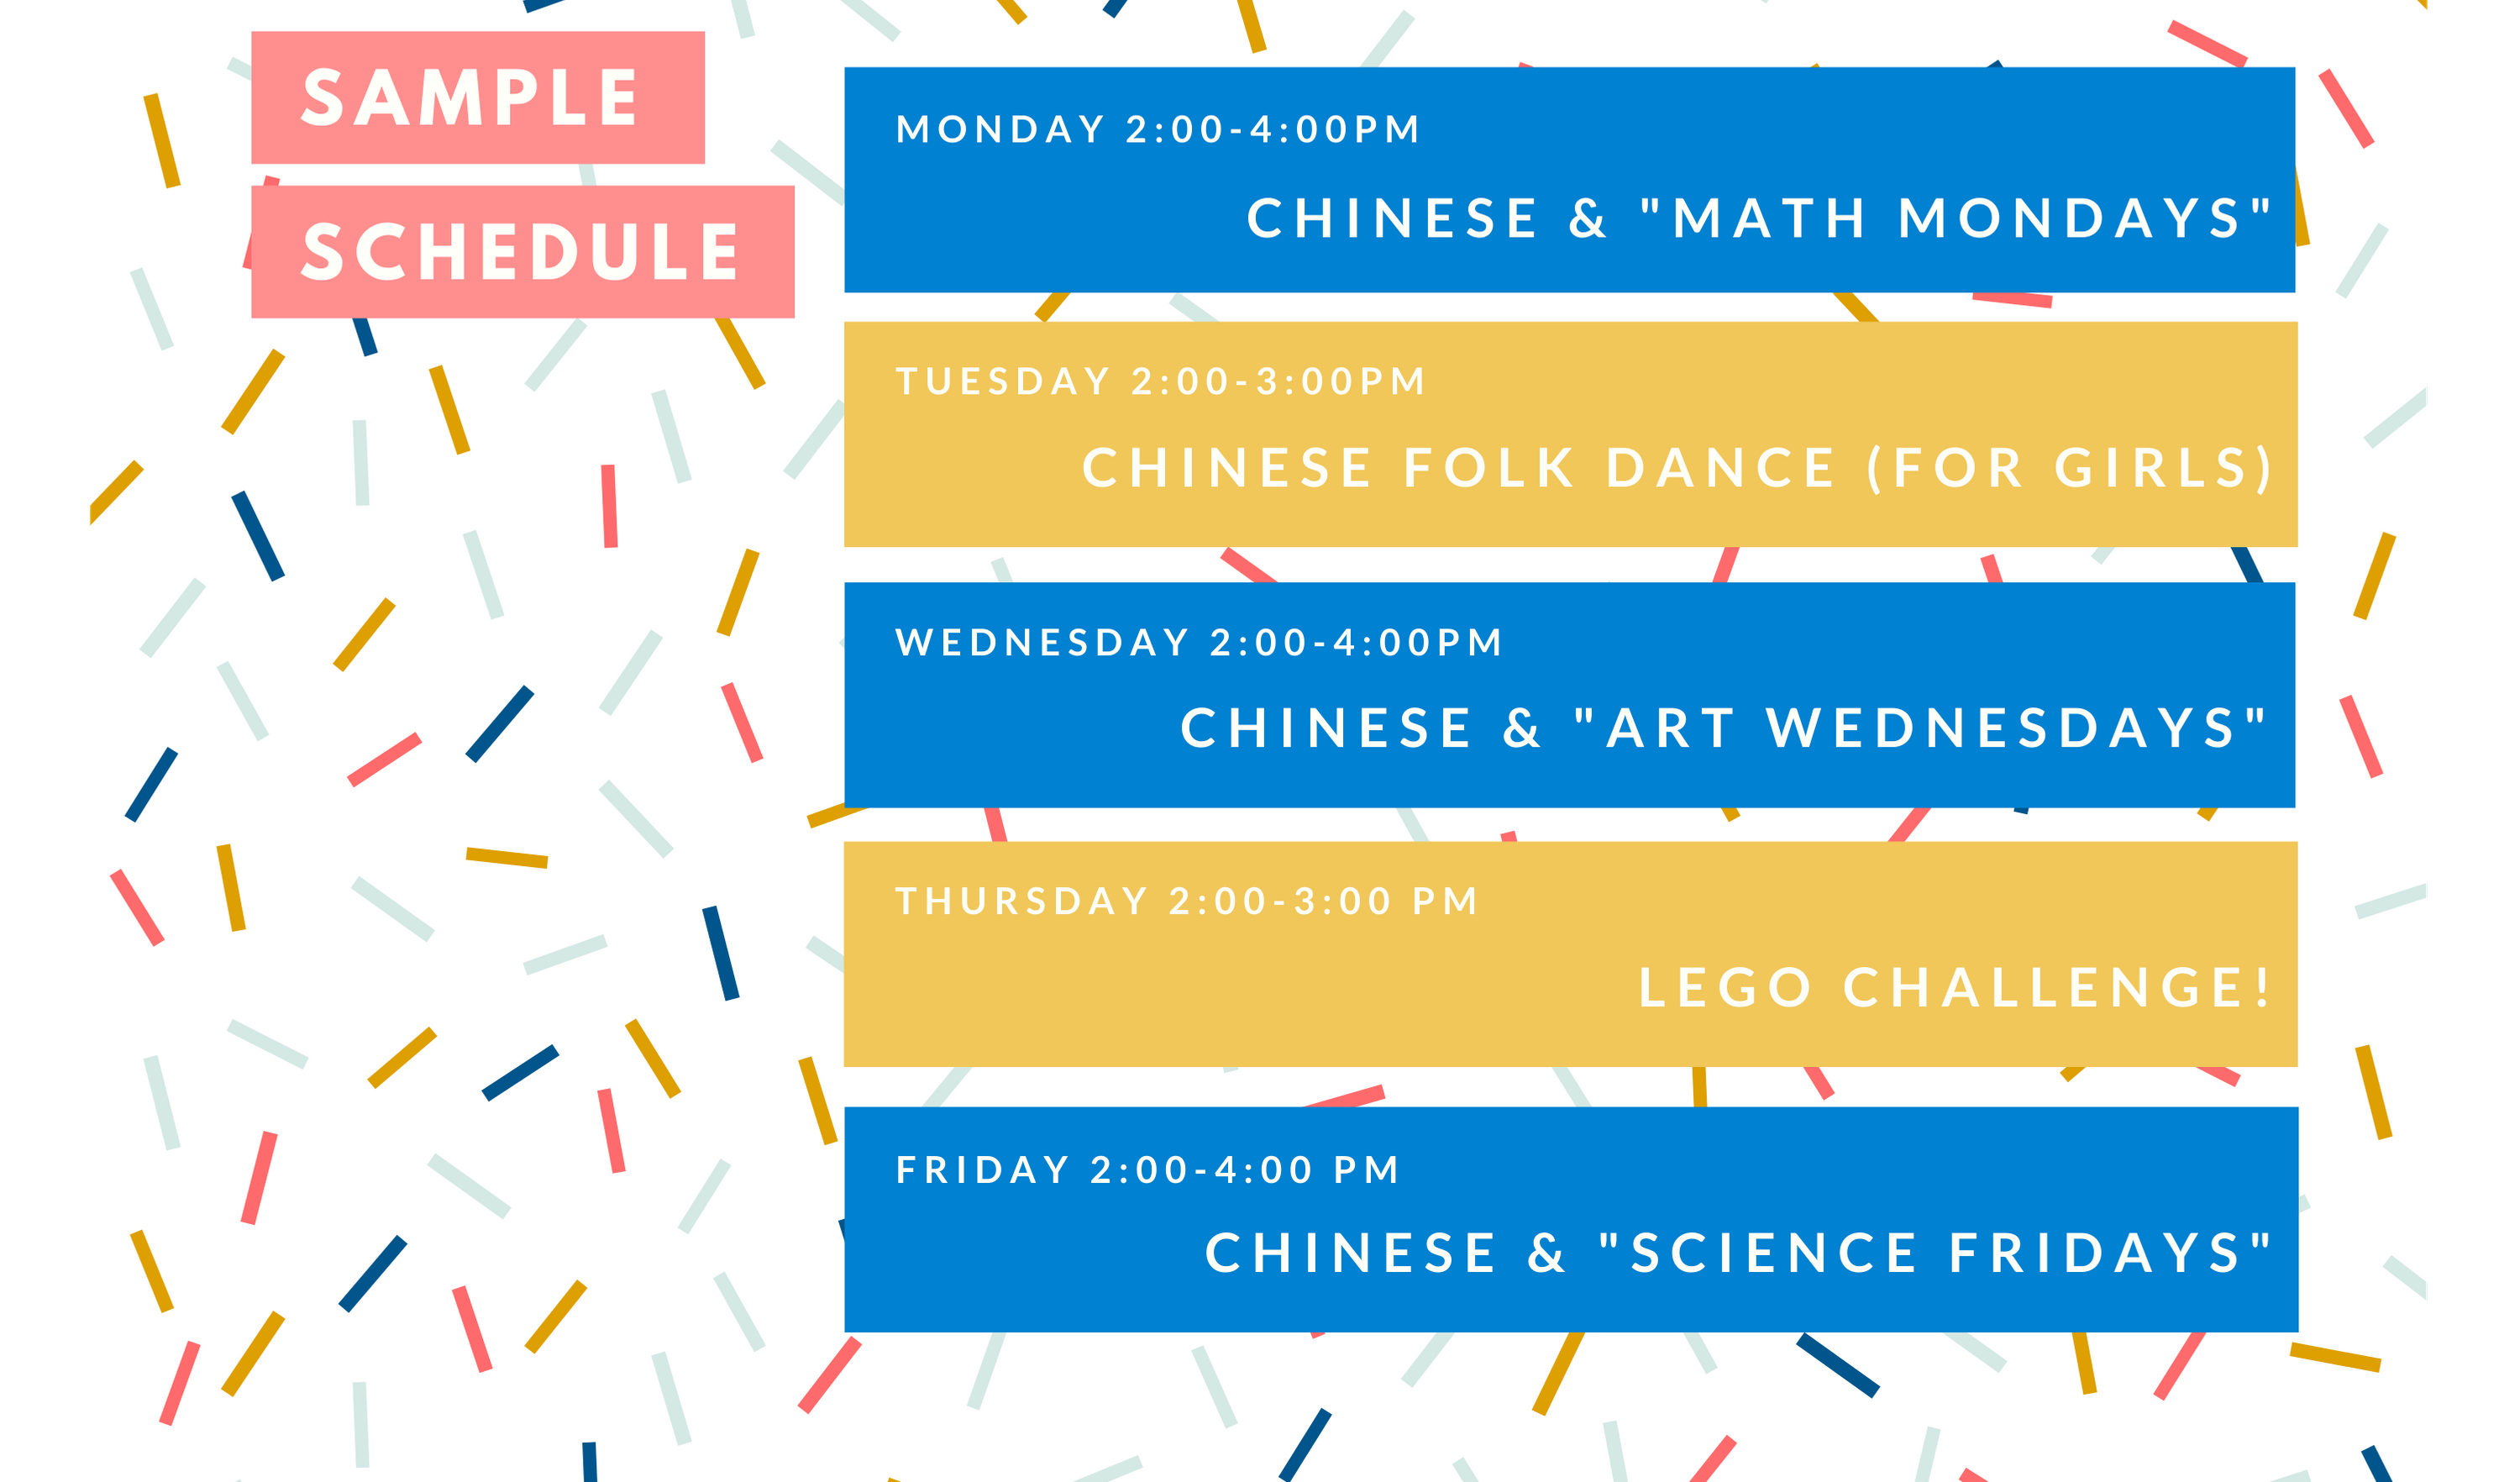 Sample-sched.png